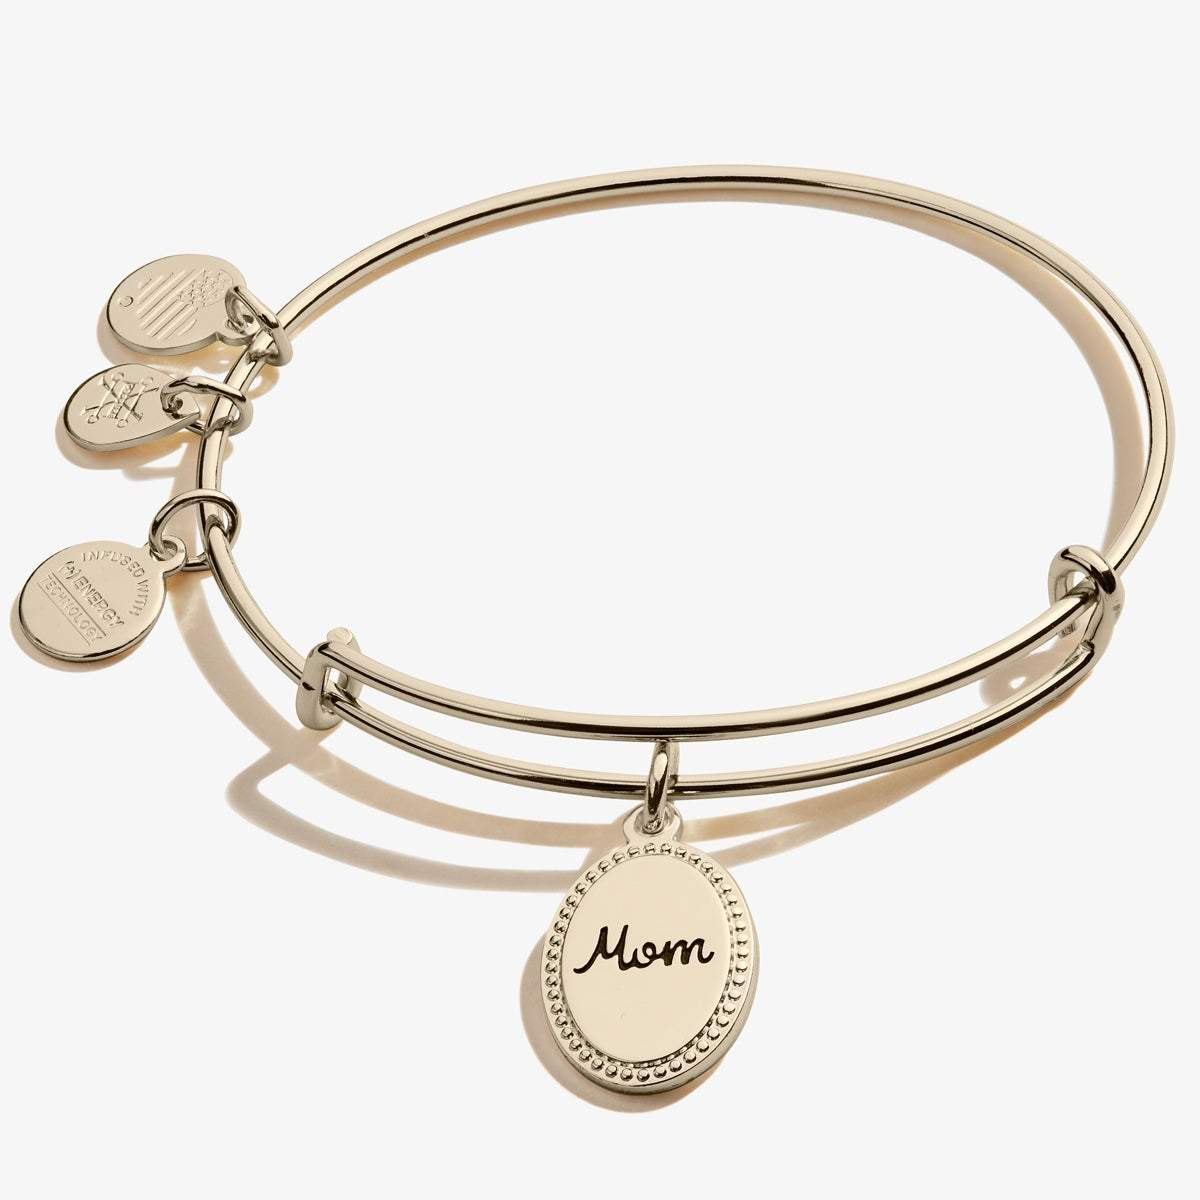 Mom, 'Bonded by Love' Charm Bangle in Gold